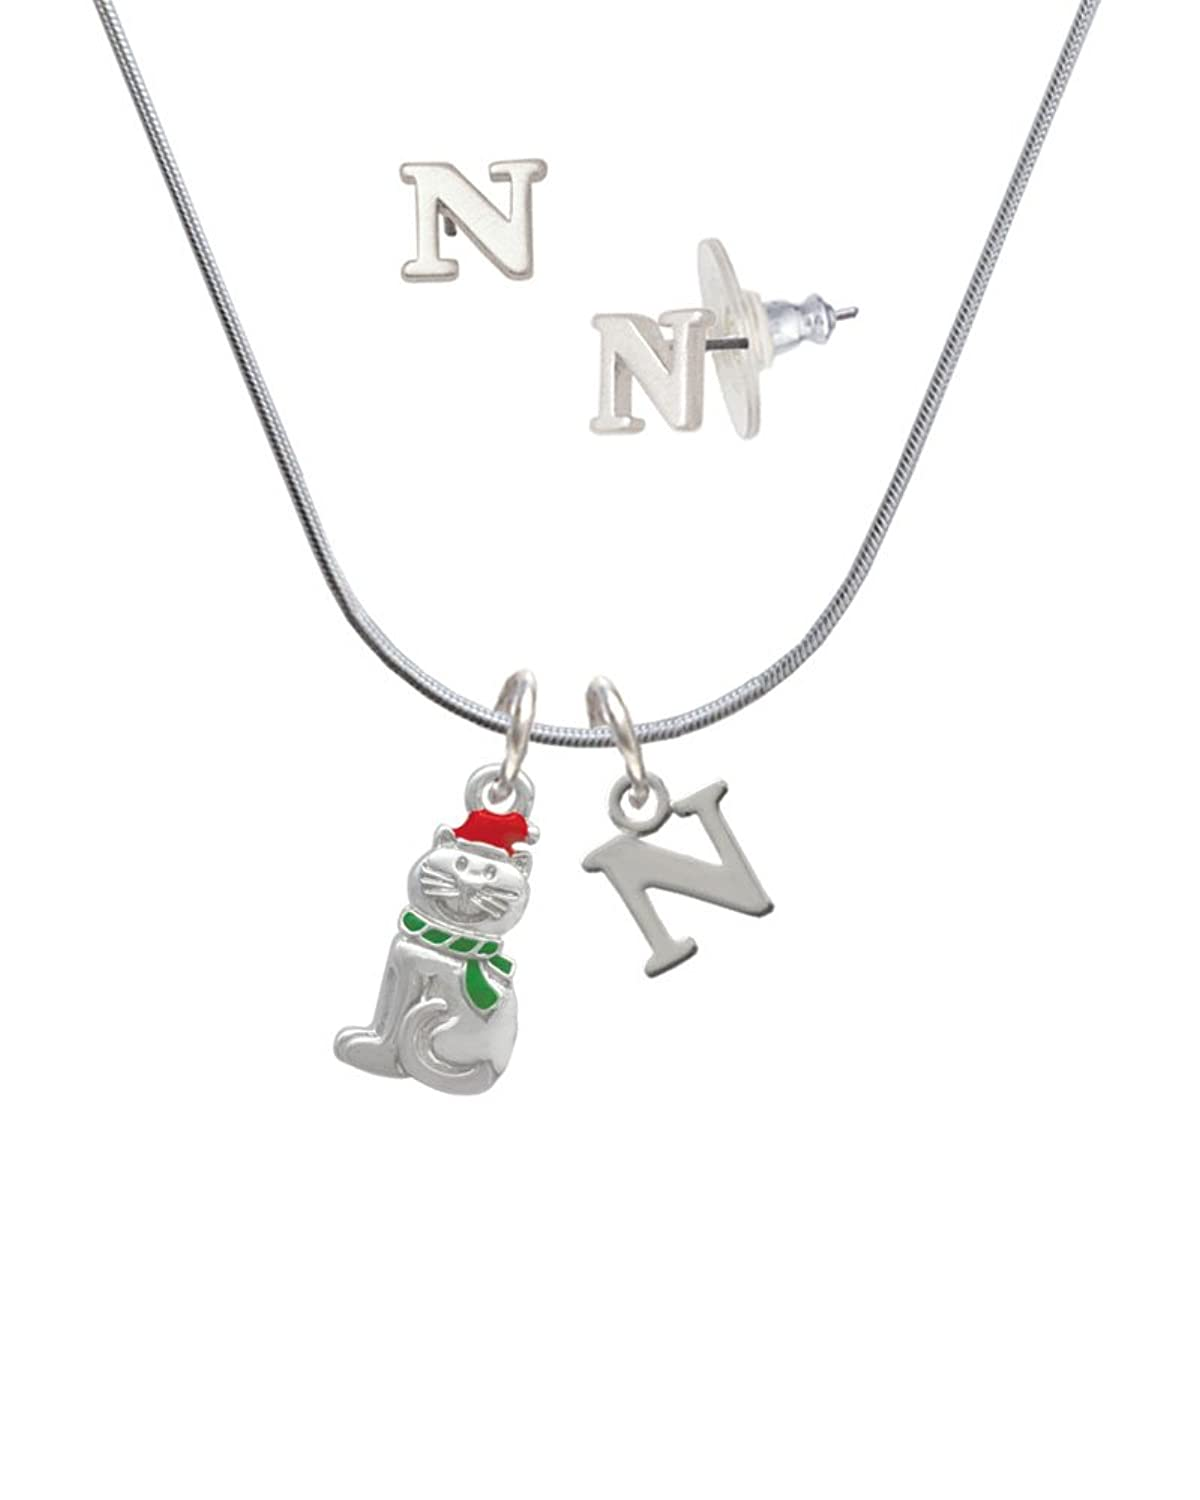 2-D Christmas Cat with Red Hat - N Initial Charm Necklace and Stud Earrings Jewelry Set